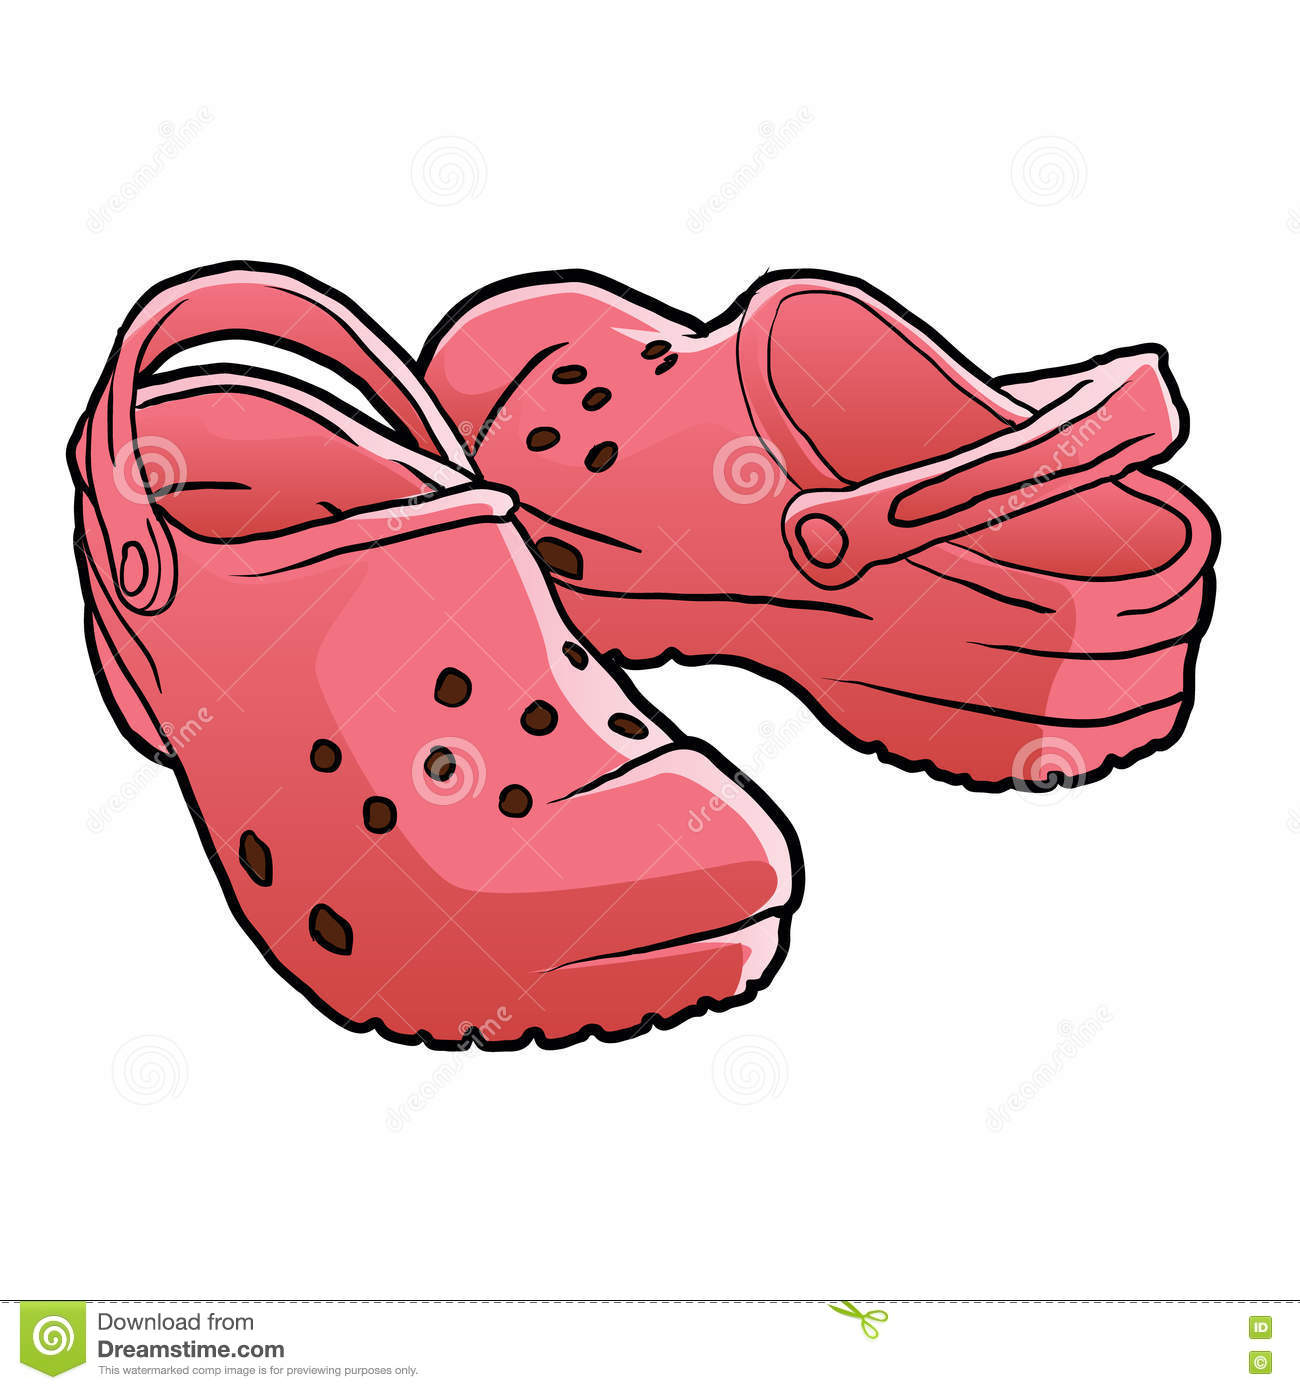 how to draw a croc shoe